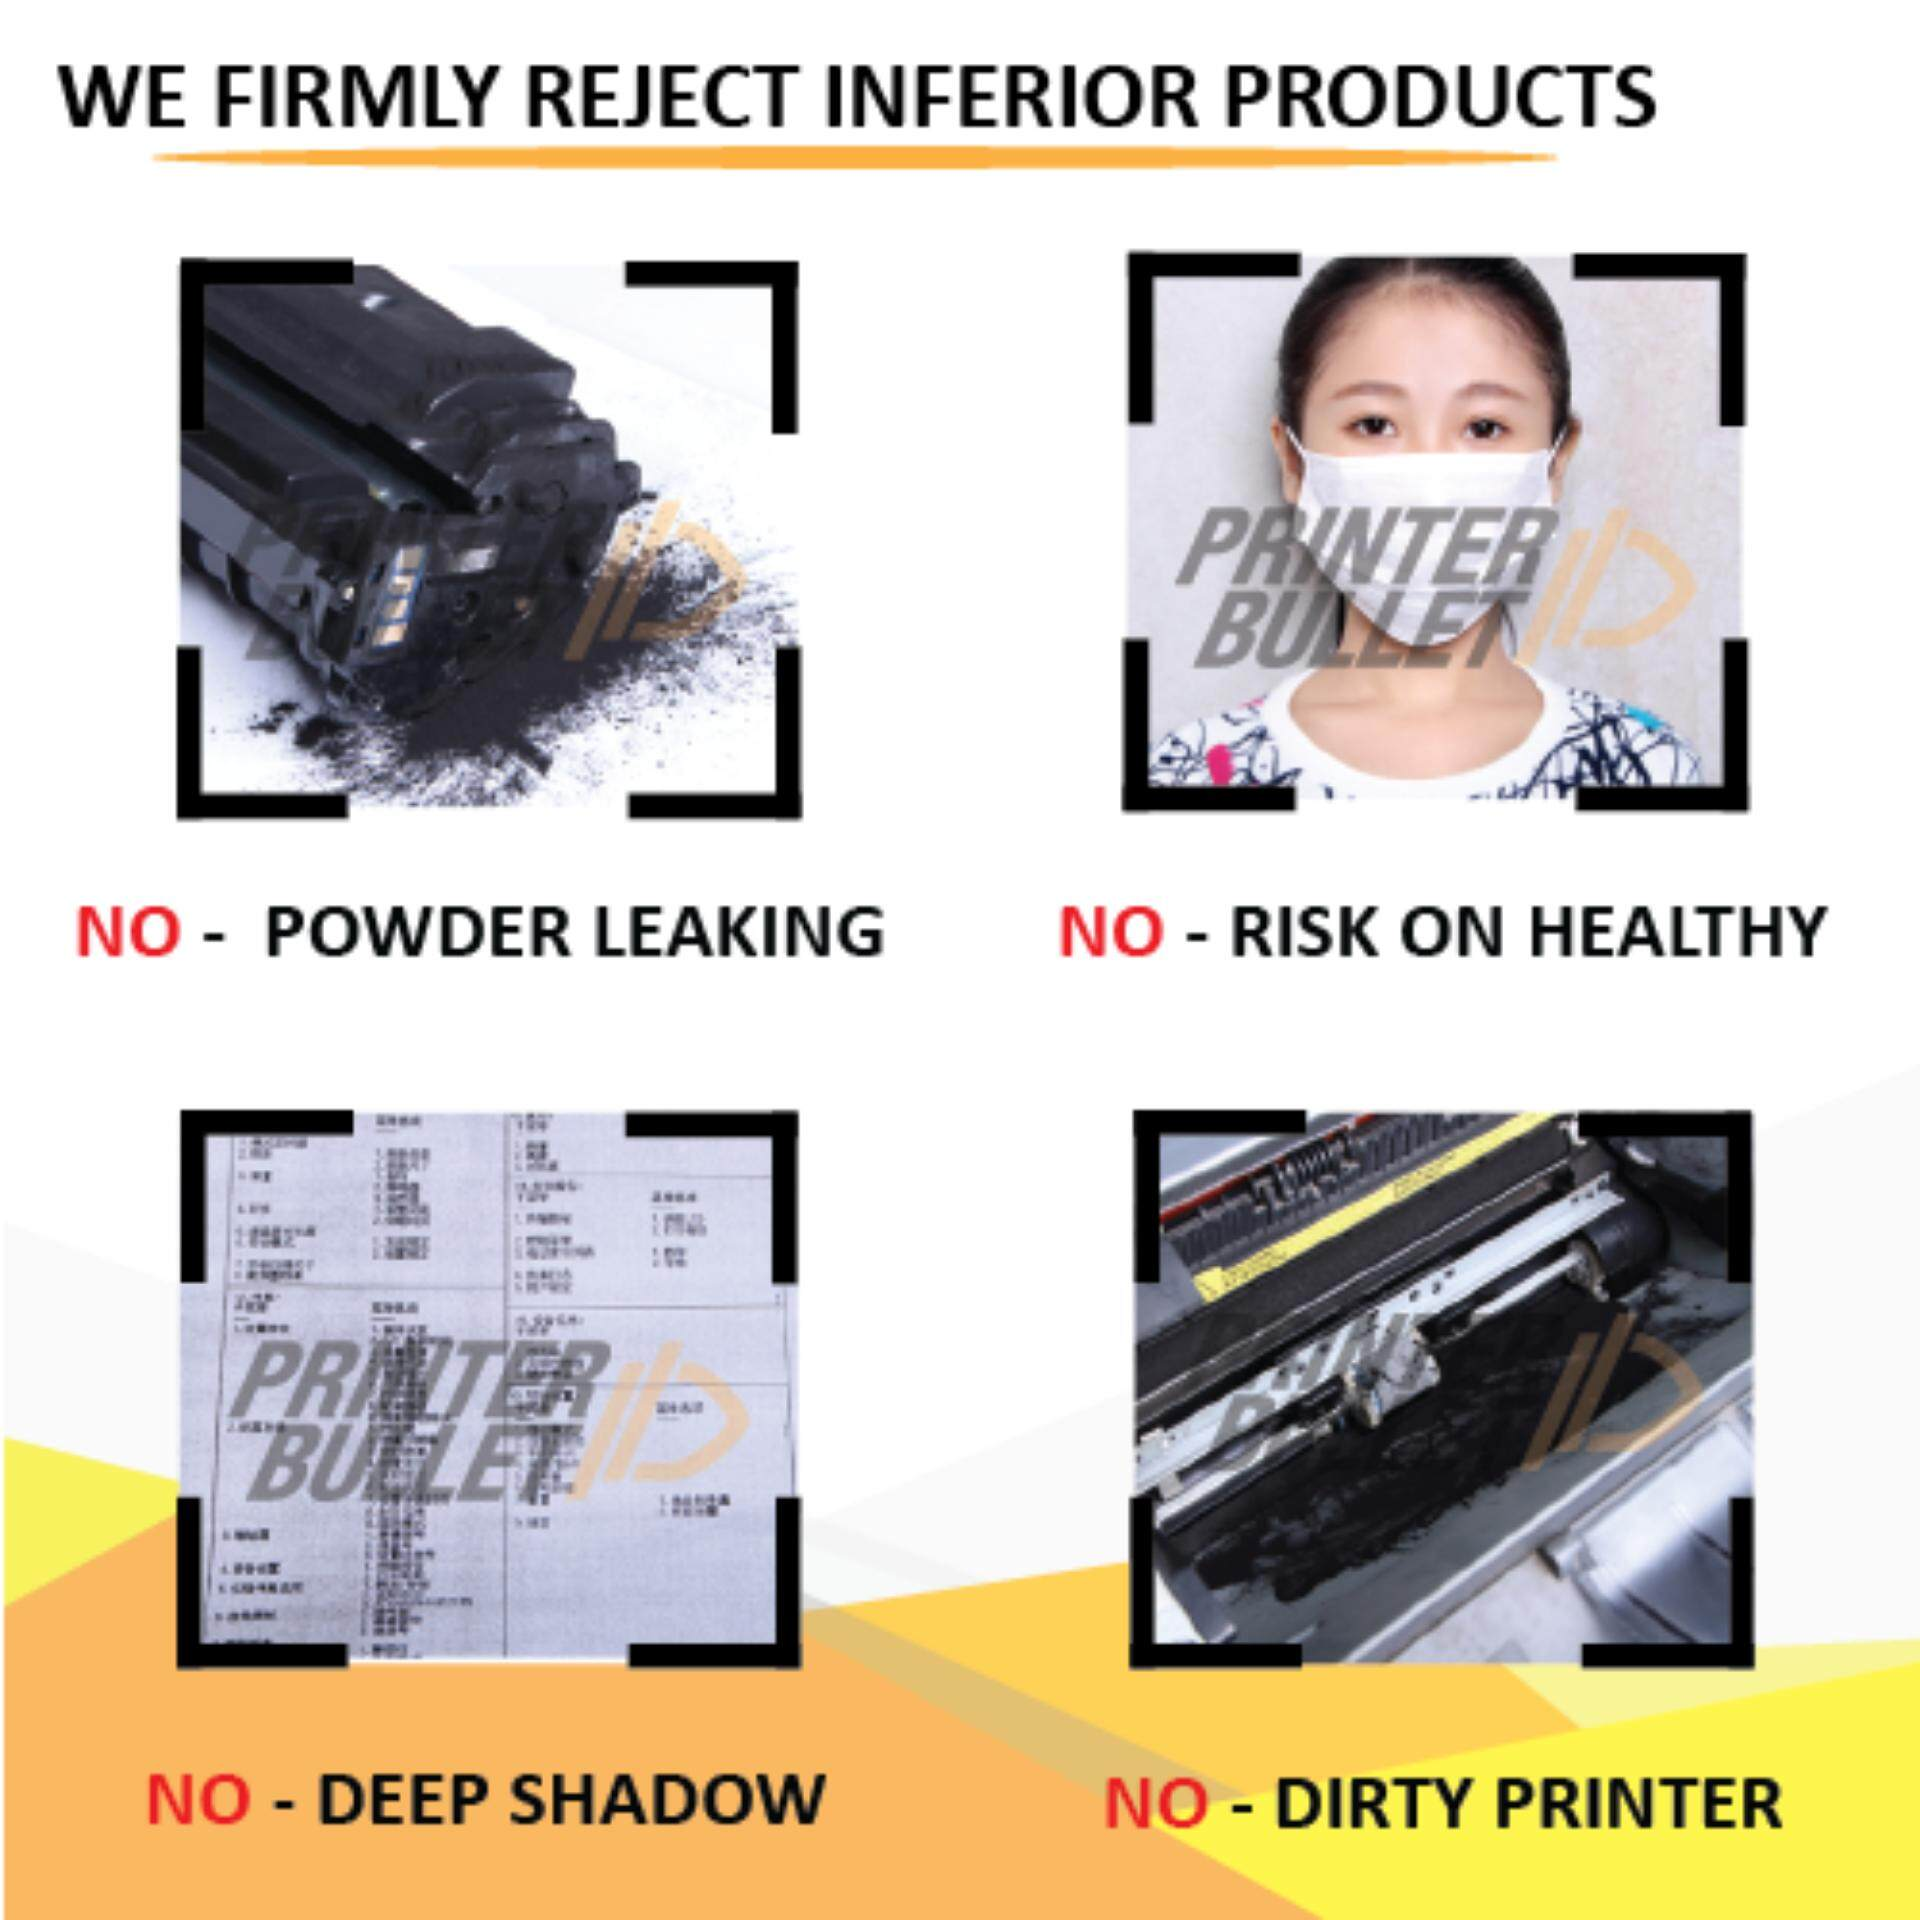 Ricoh SP1200 / SP1200S High Quality Compatible Laser Toner Cartridge For Ricoh Aficio SP1200 / SP1200S / SP1200SF / SP1200SU / SP1210N Printer